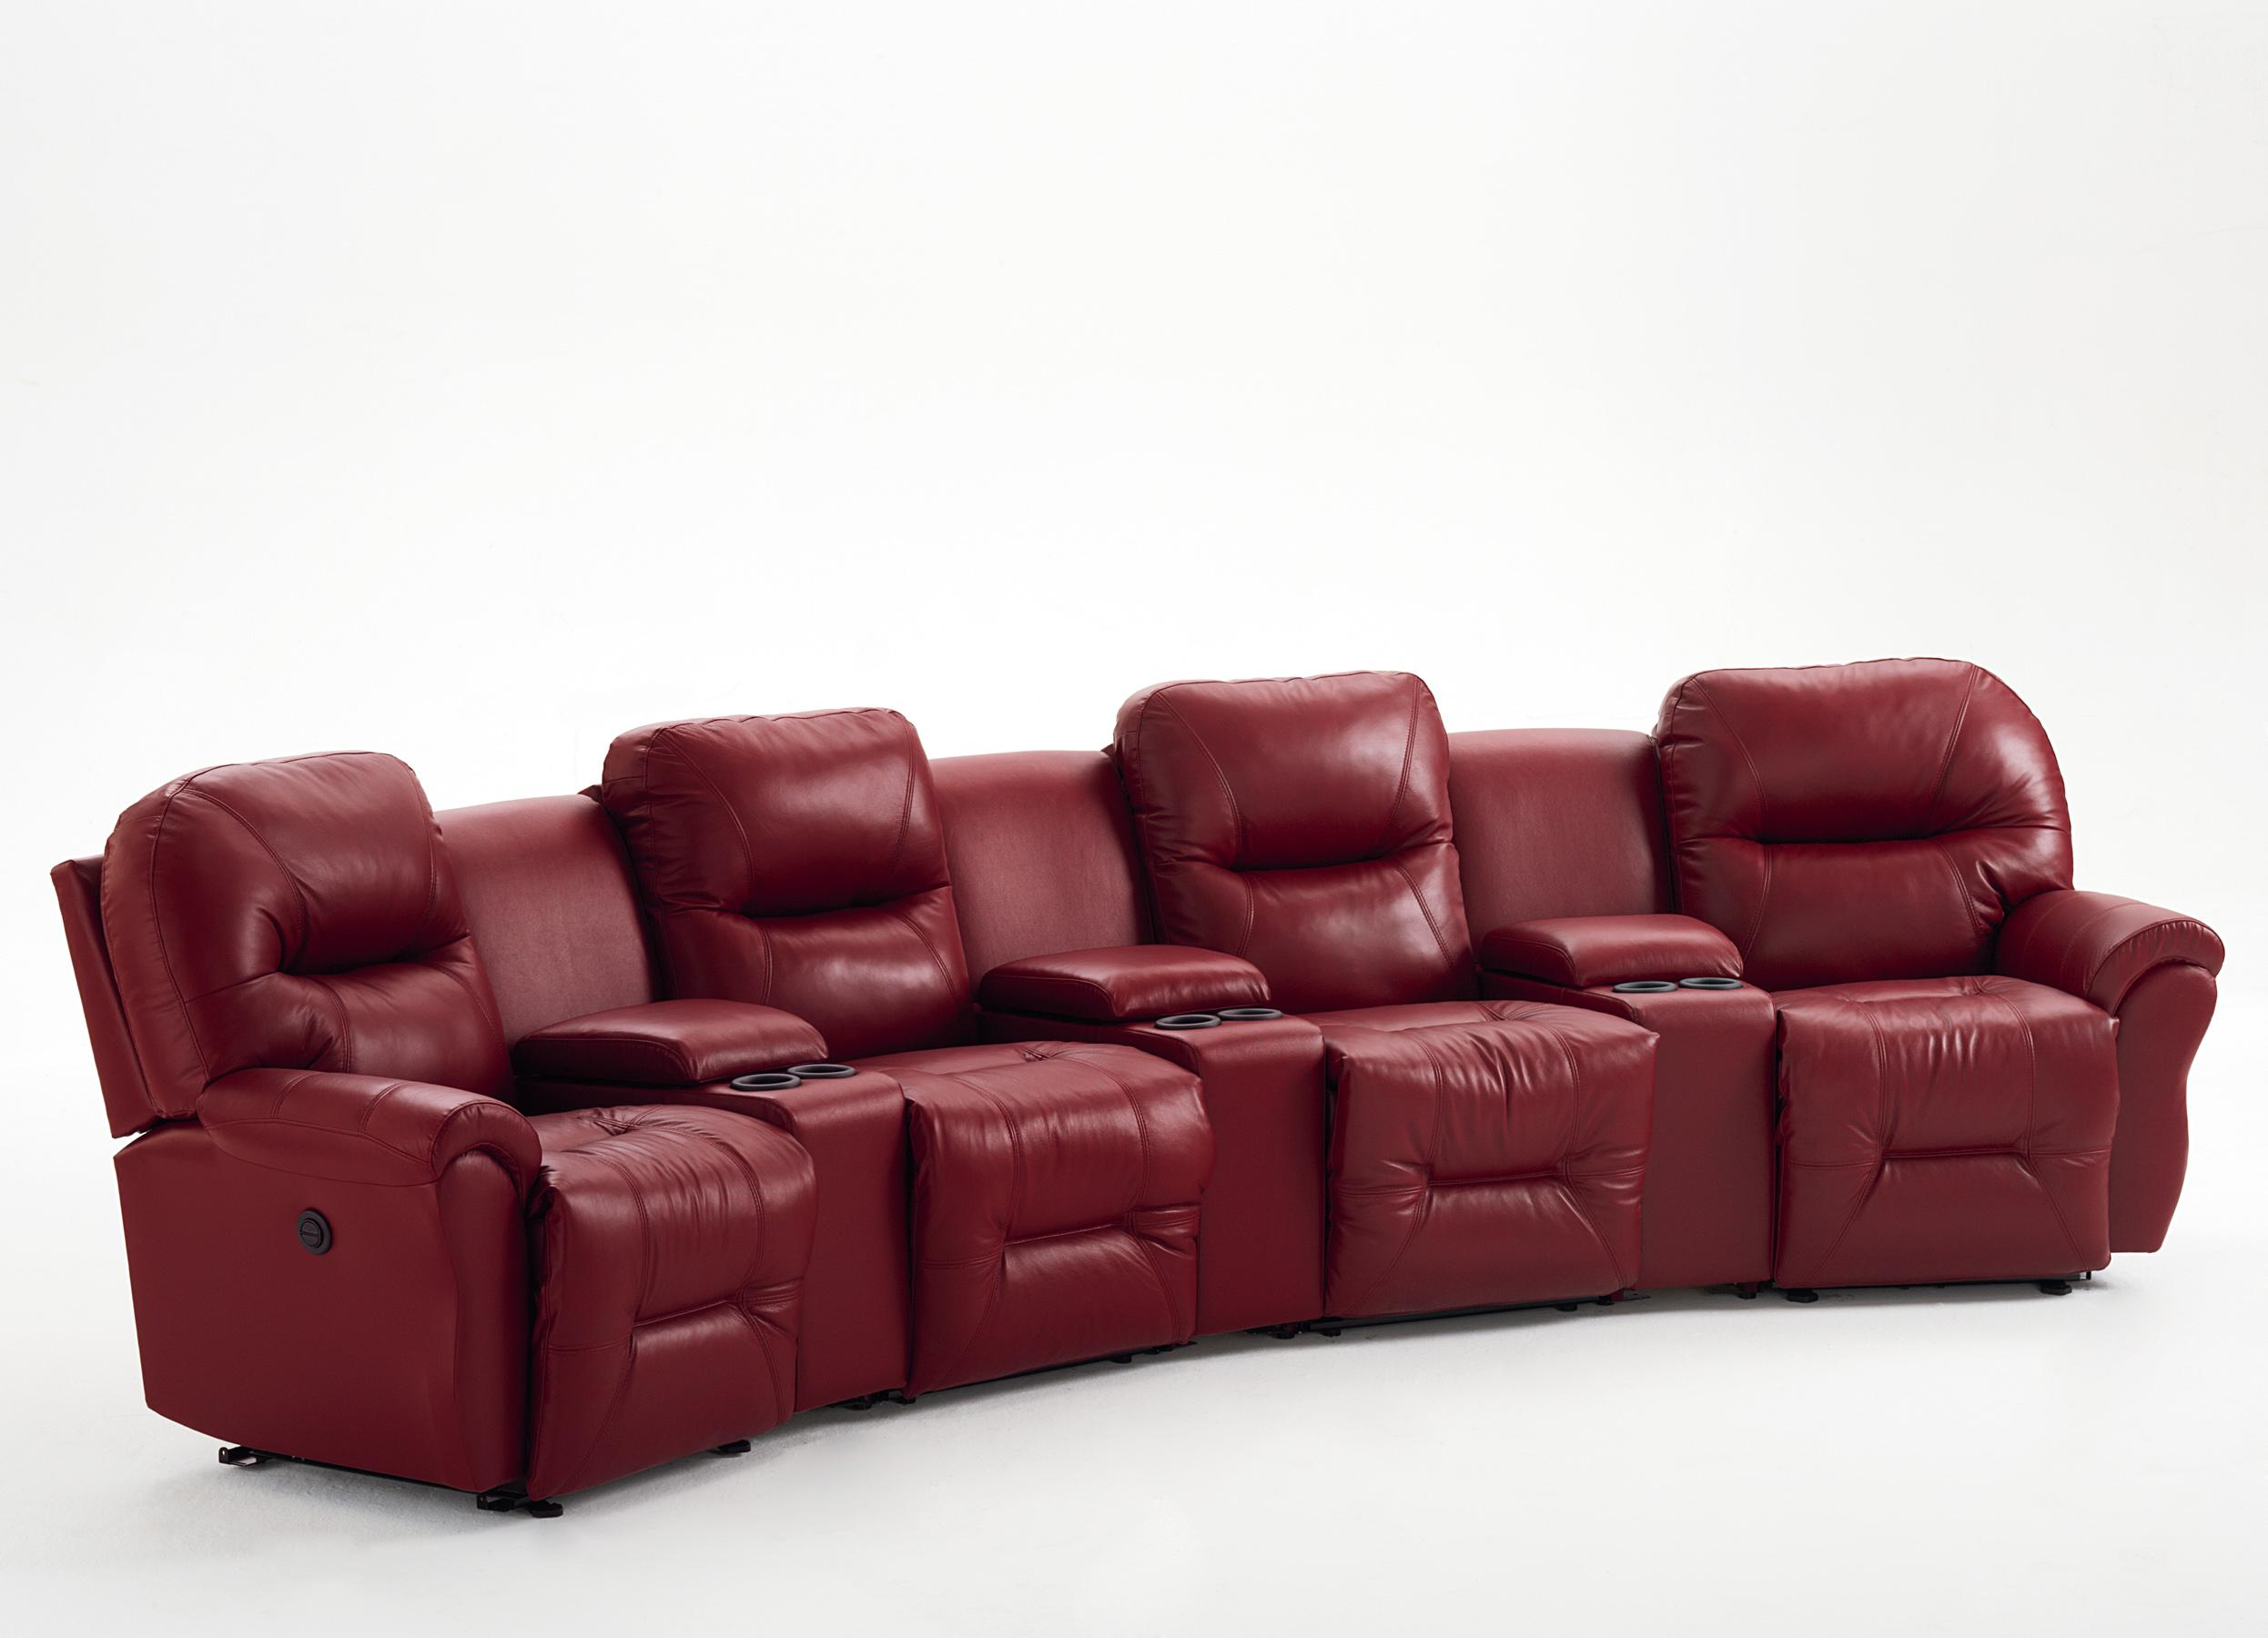 sofa theater pasadena buy corner online 4 seater power reclining home group by best